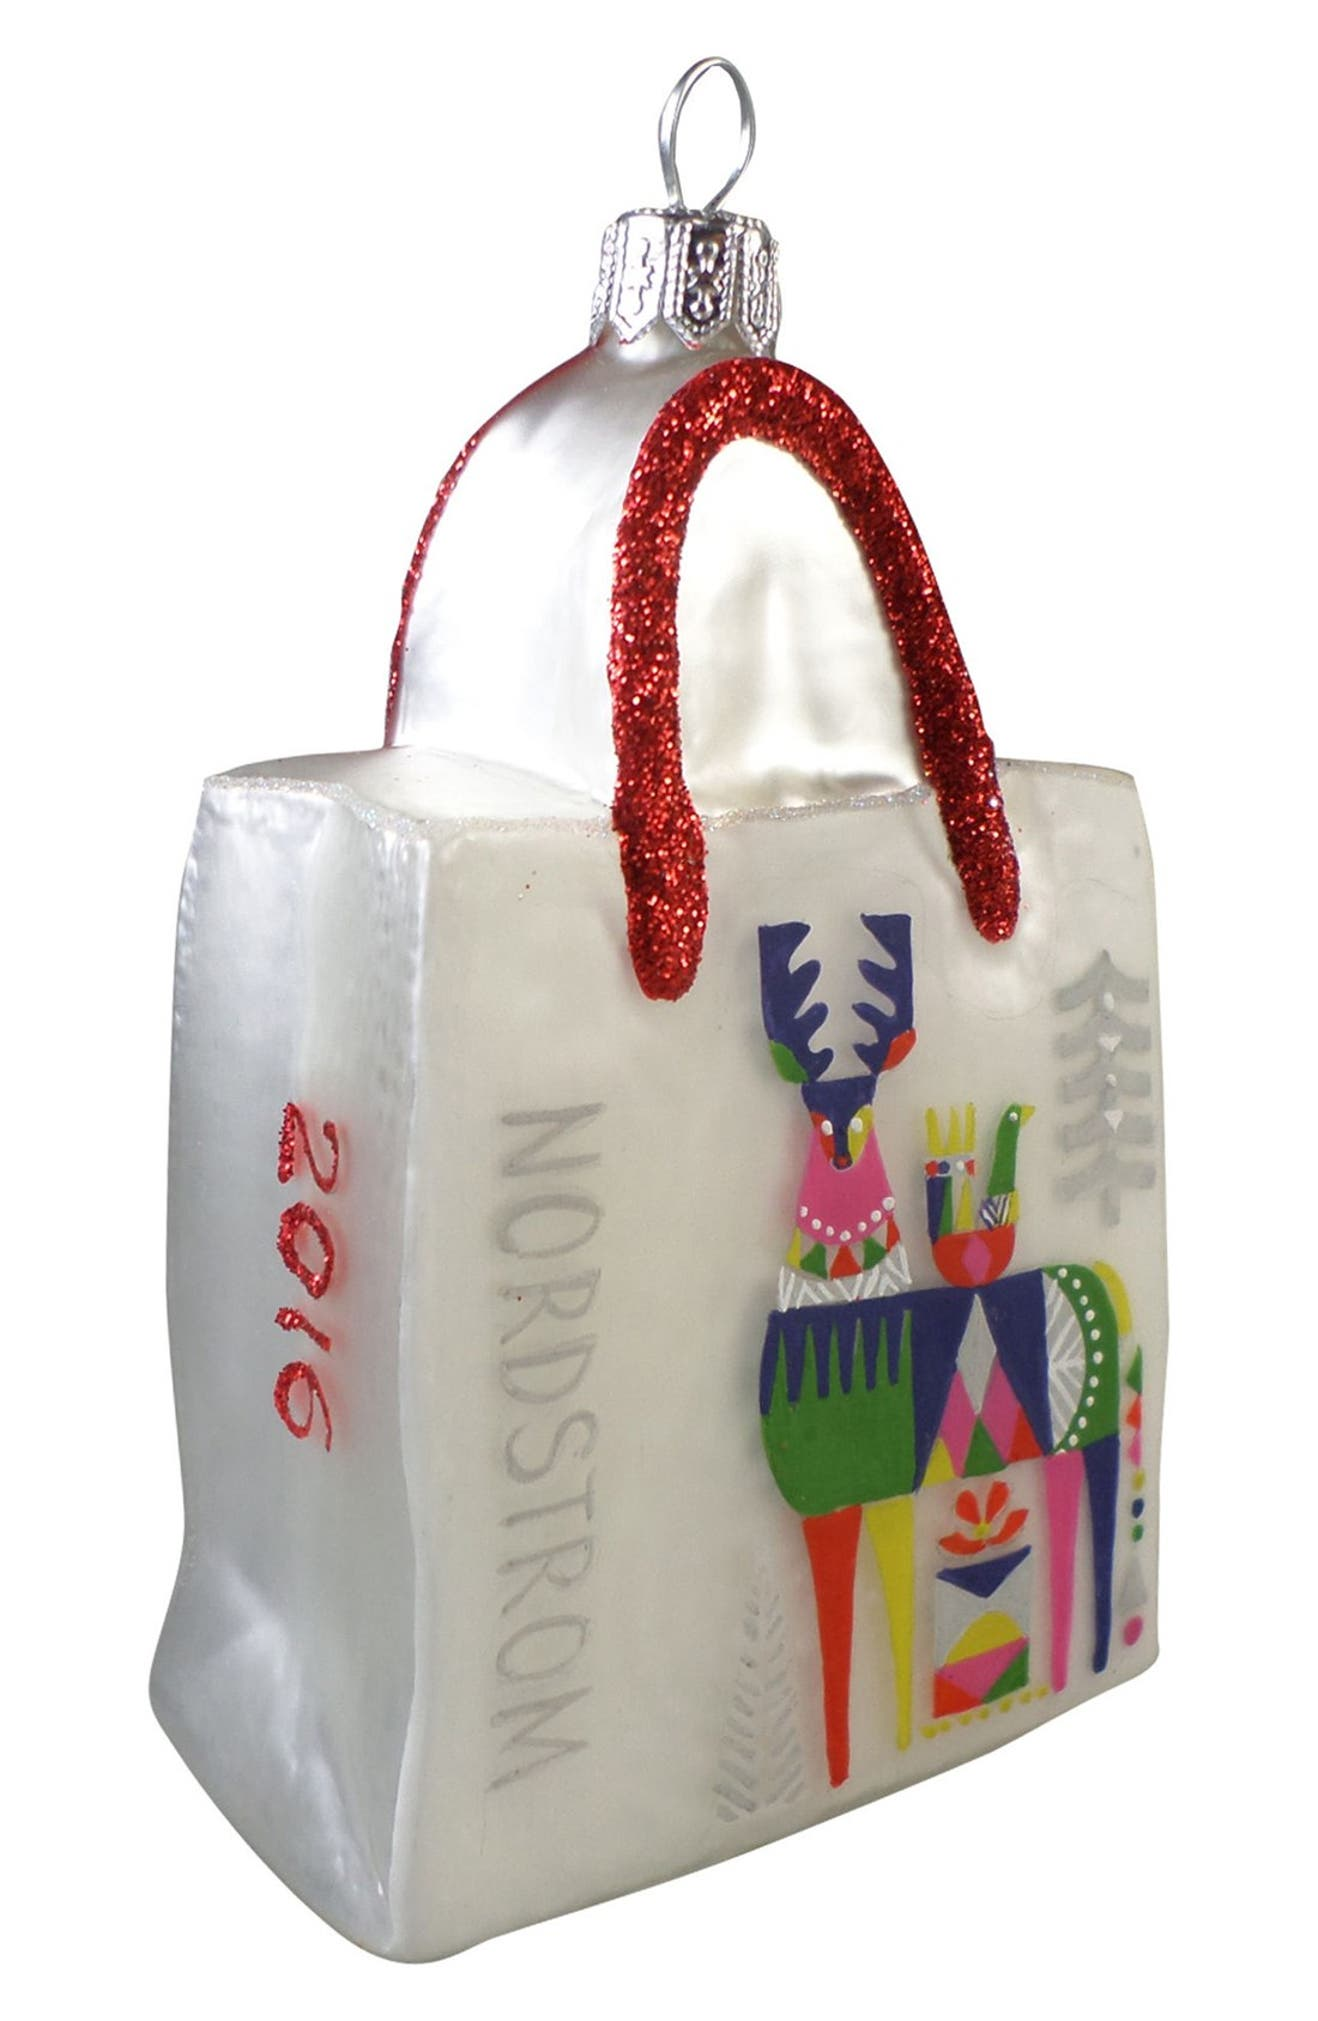 Nordstrom At Home Stag Glass Shopping Bag Ornament